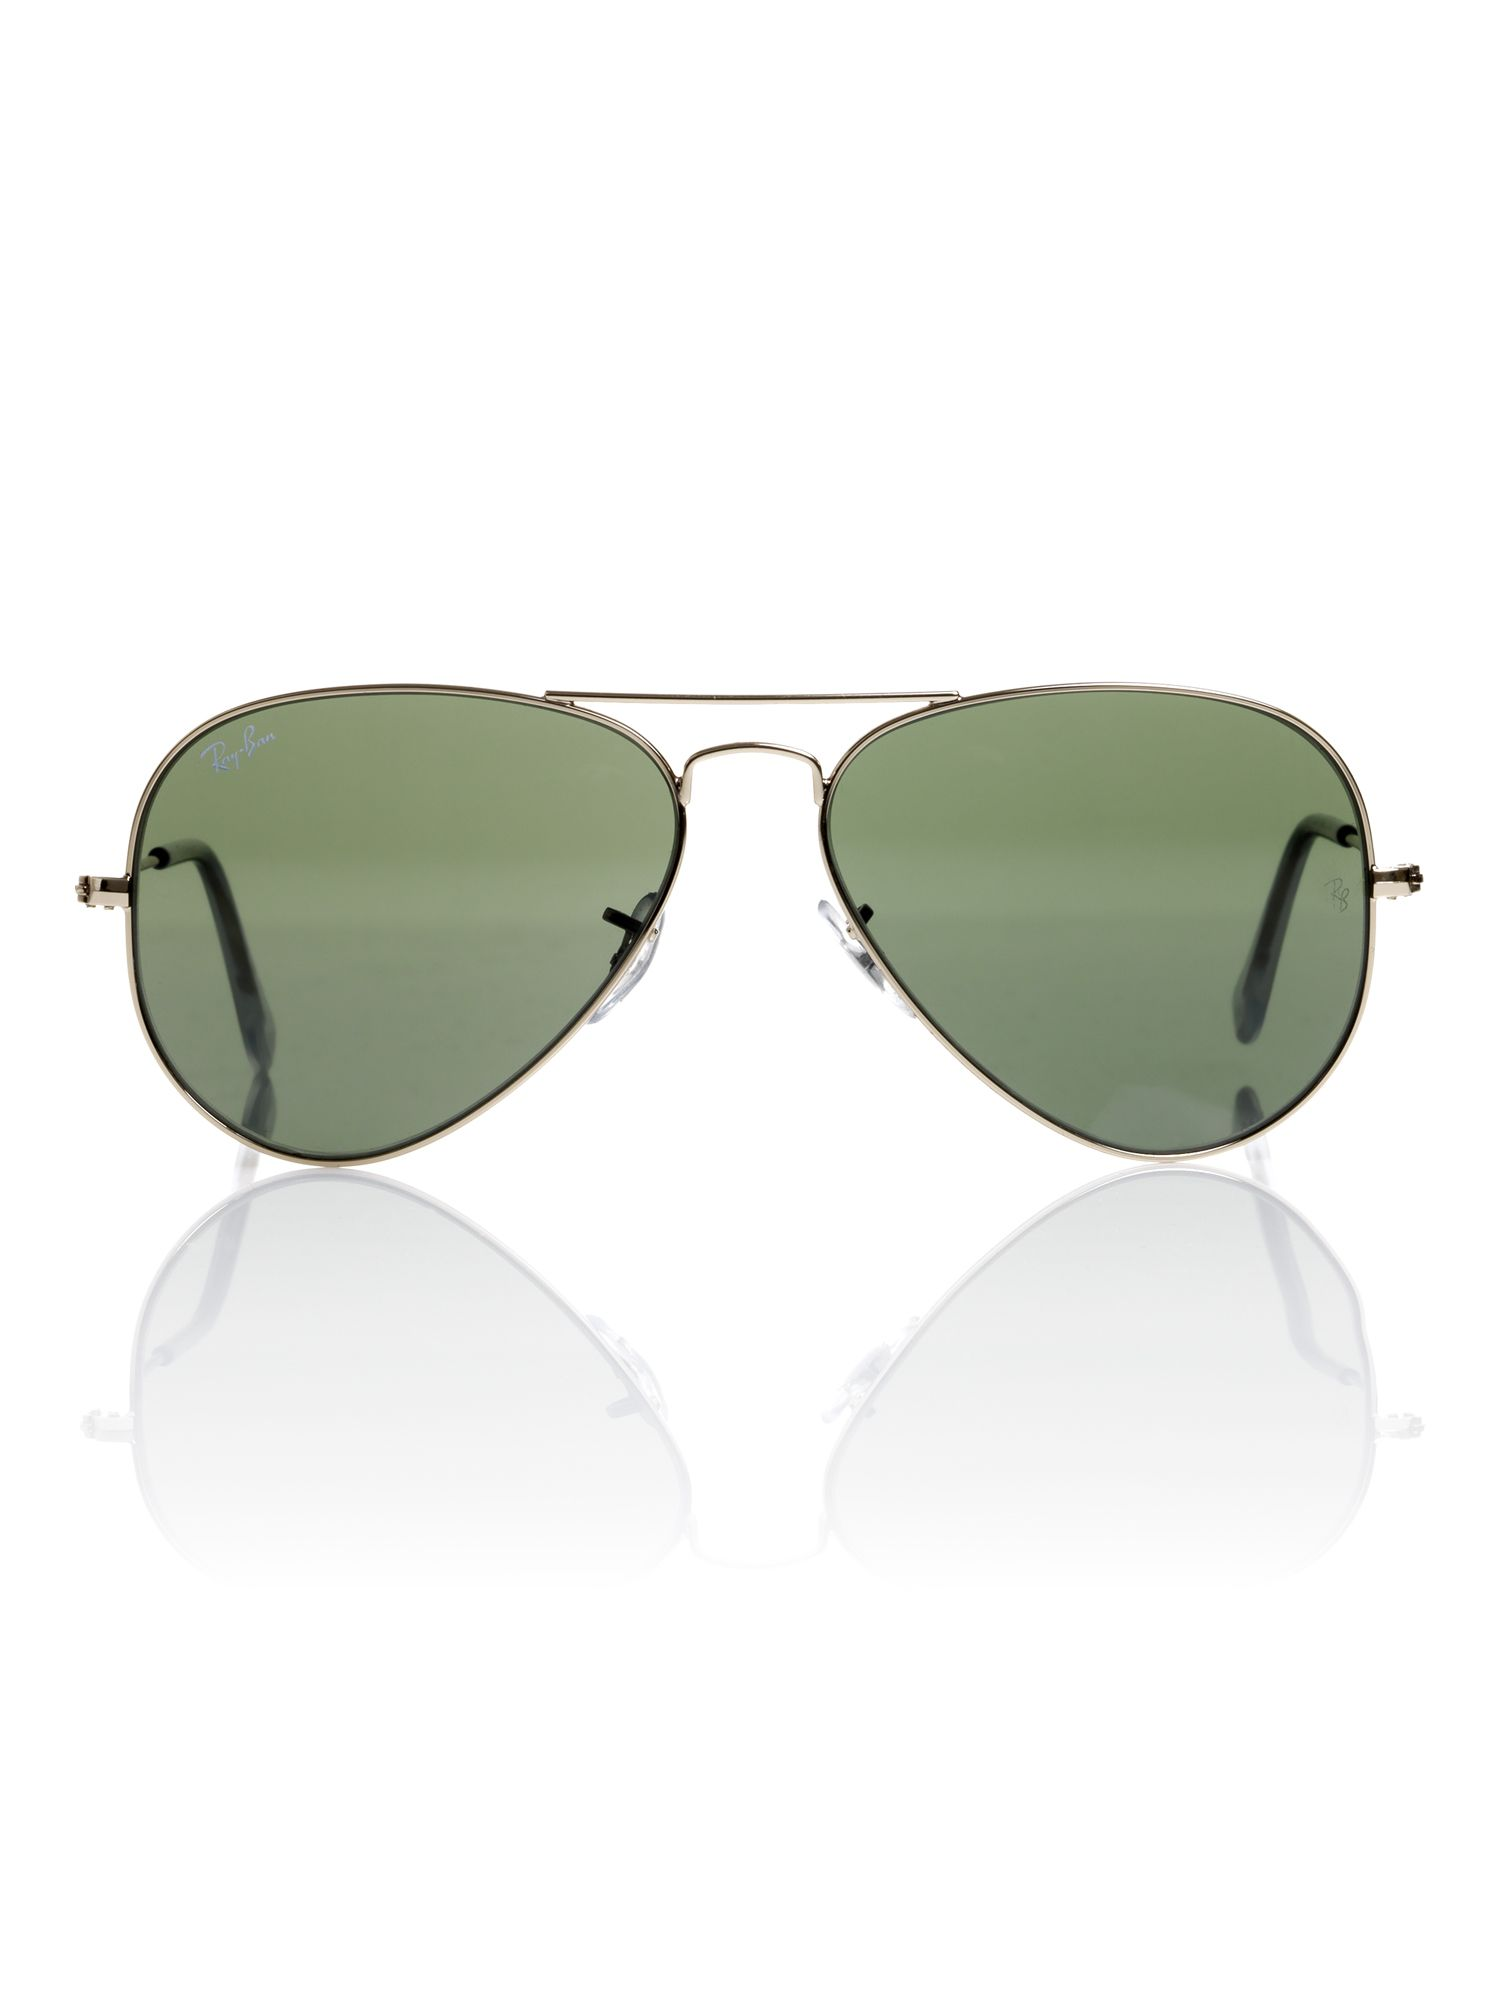 Unisex RB3025 Aviator Large Metal Sunglasses